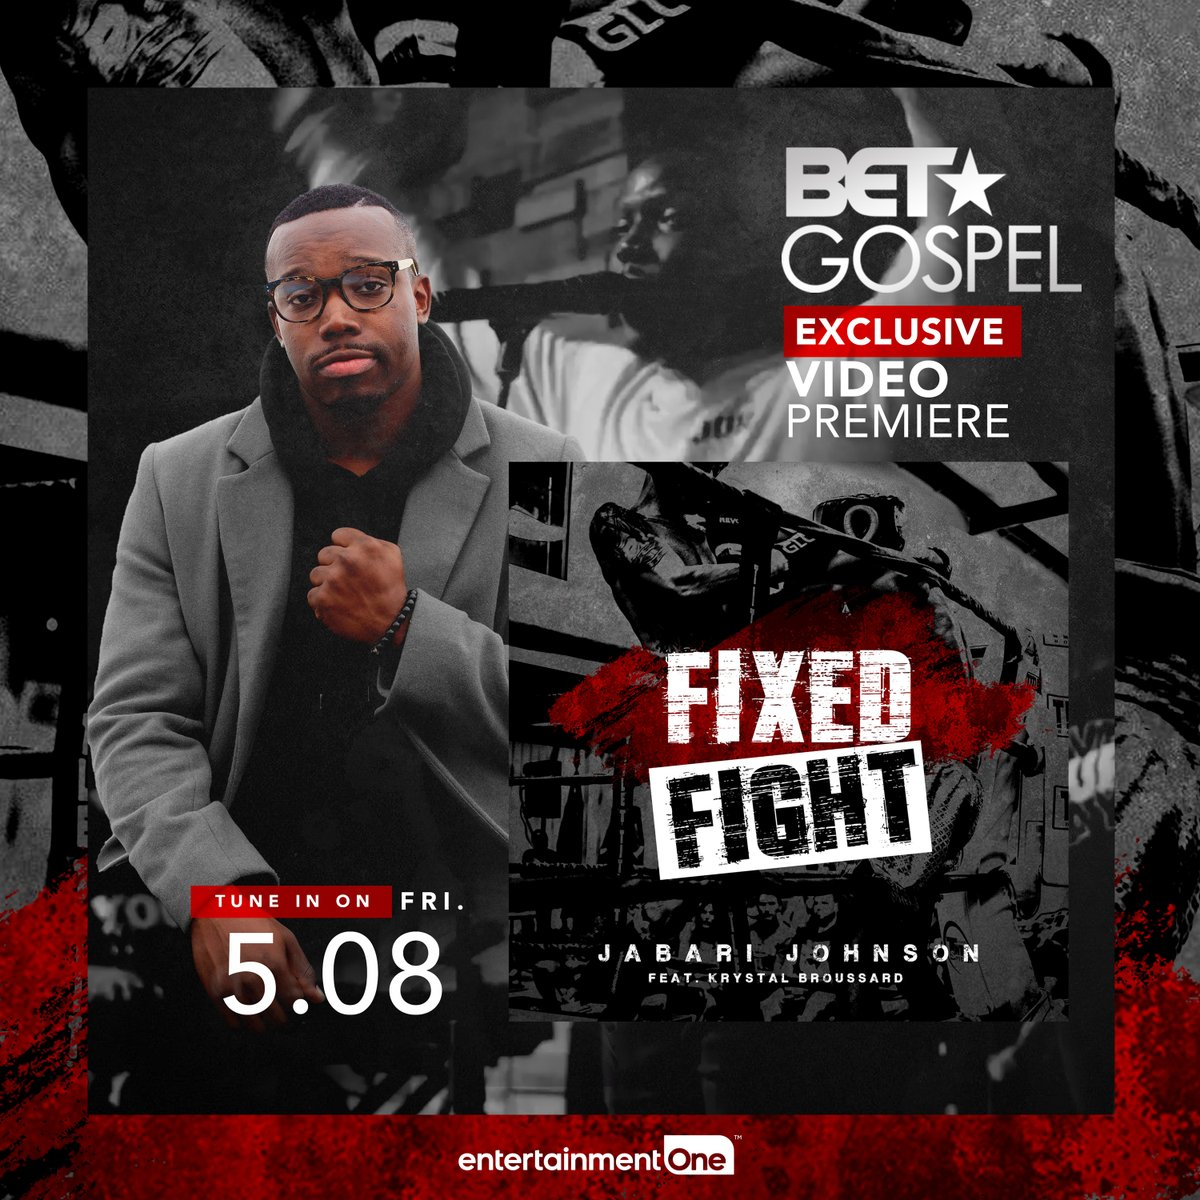 "Tune into BET Gospel for the premiere of @johnson_jabari new video ""Fixed Fight"" airing at the top of every hour until 11am EST! https://t.co/j0UTXaA0gG"